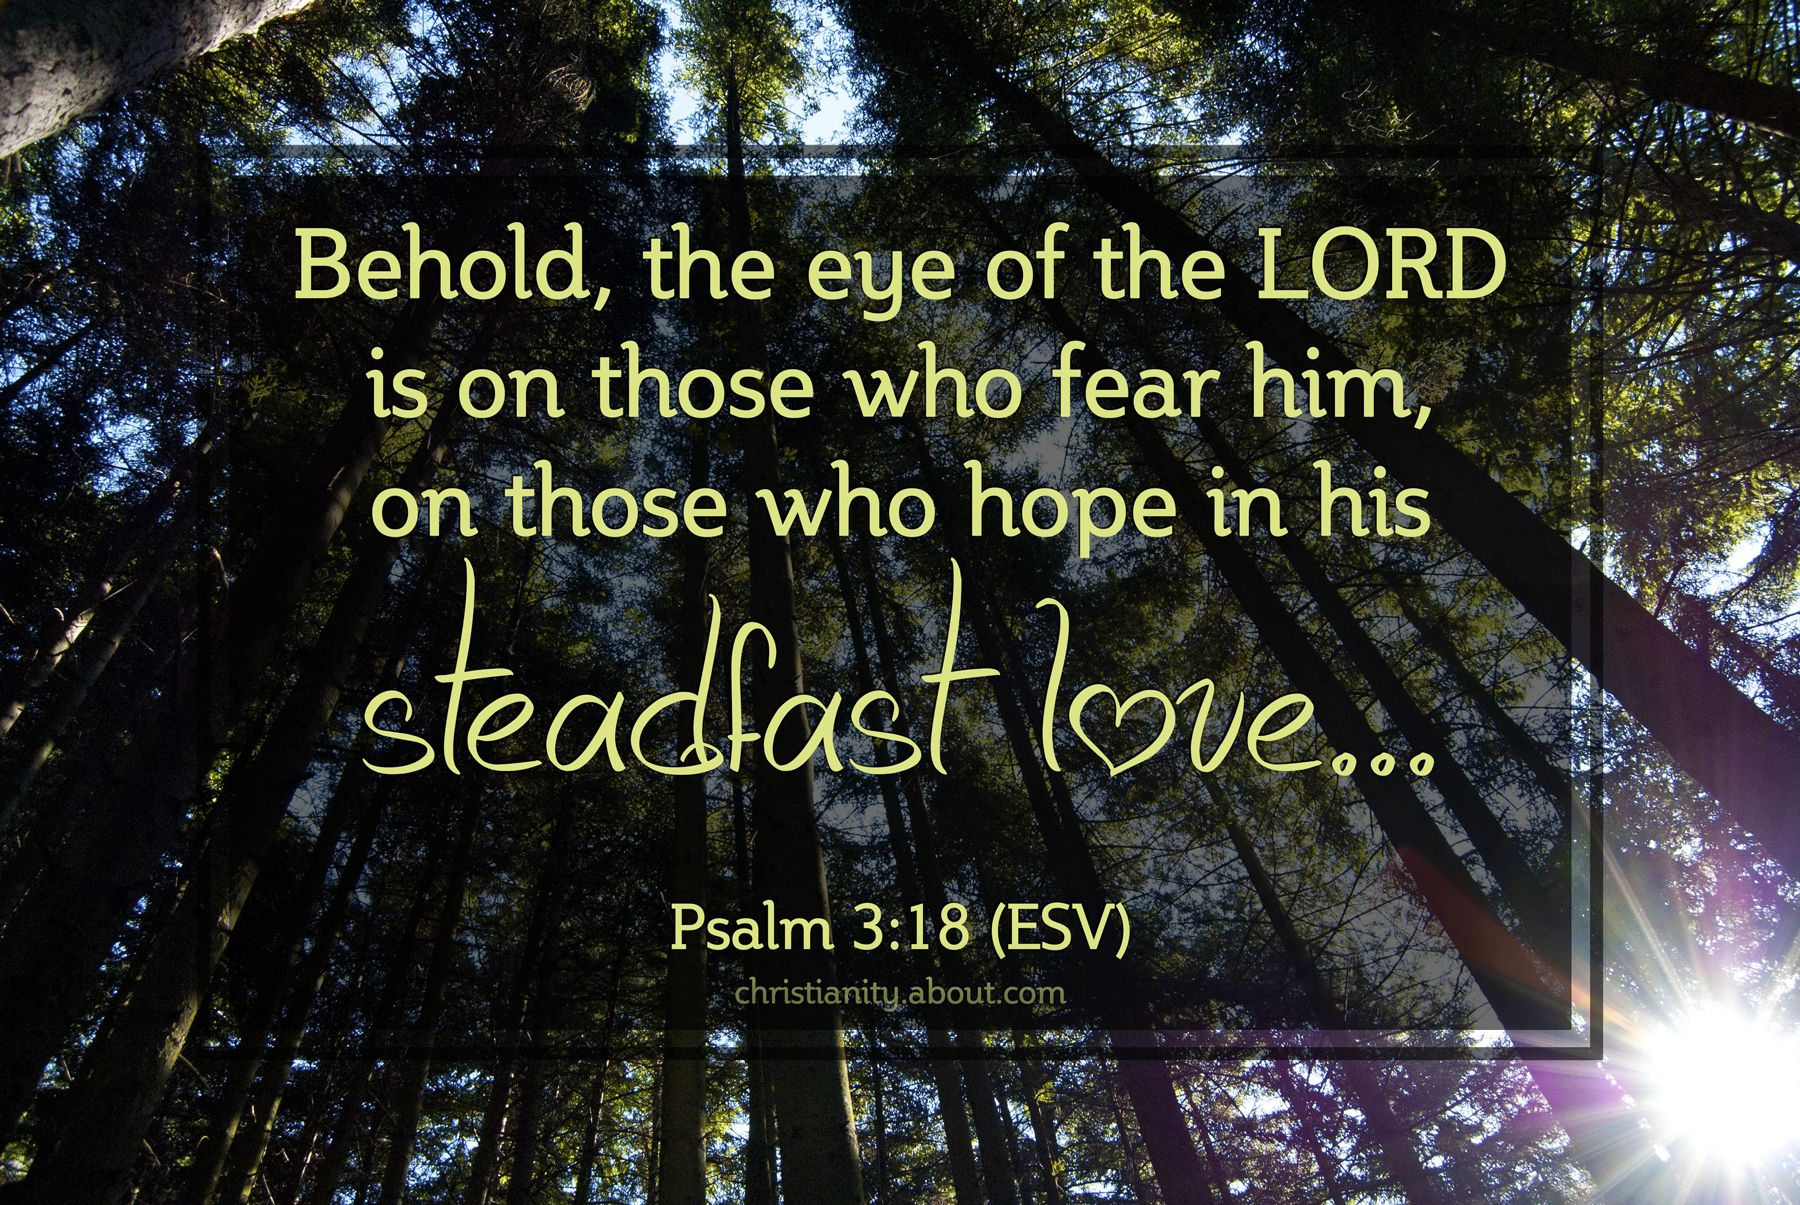 #cre8365 - February 24 - Hope in His Steadfast Love - for verse of the day: http://christianity.about.com/od/verseoftheday/qt/verseday365.htm